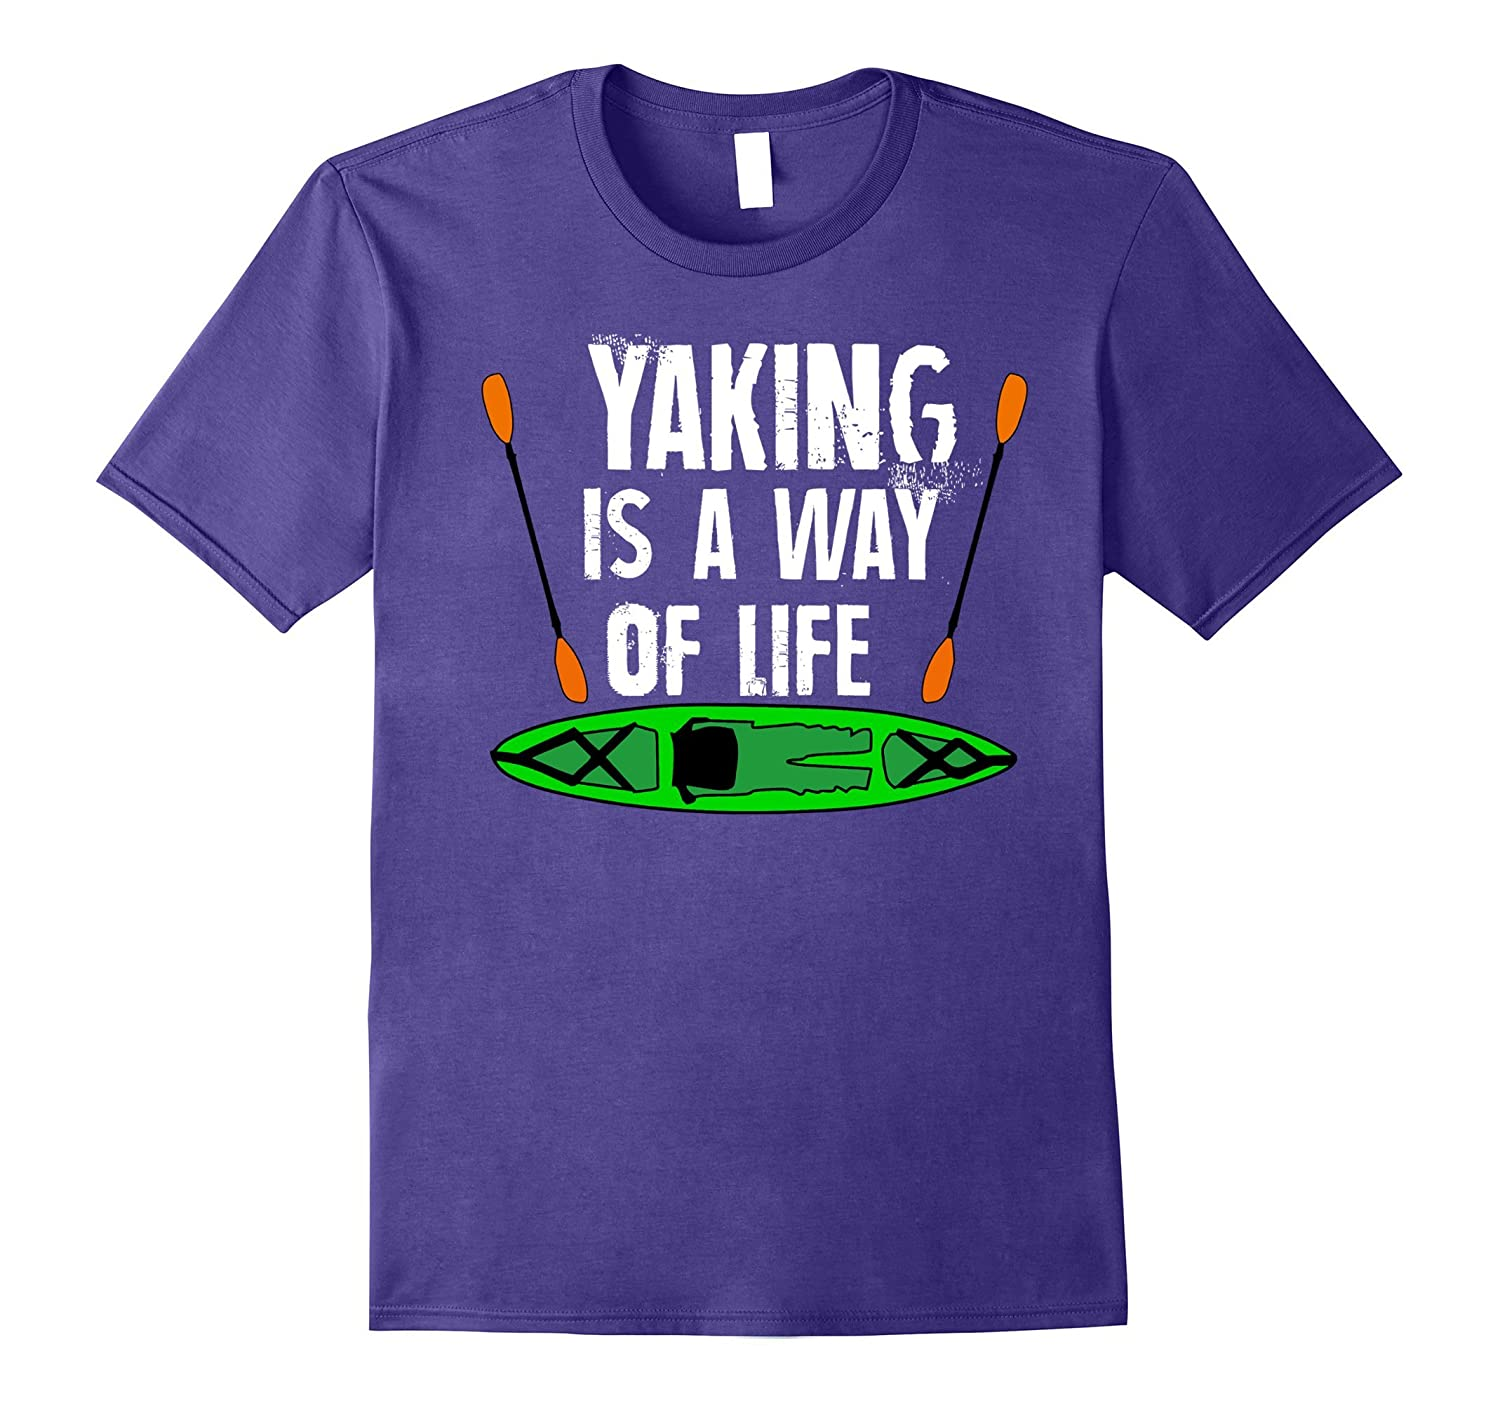 Yaking Is A Way Of Life Kayak T-shirt